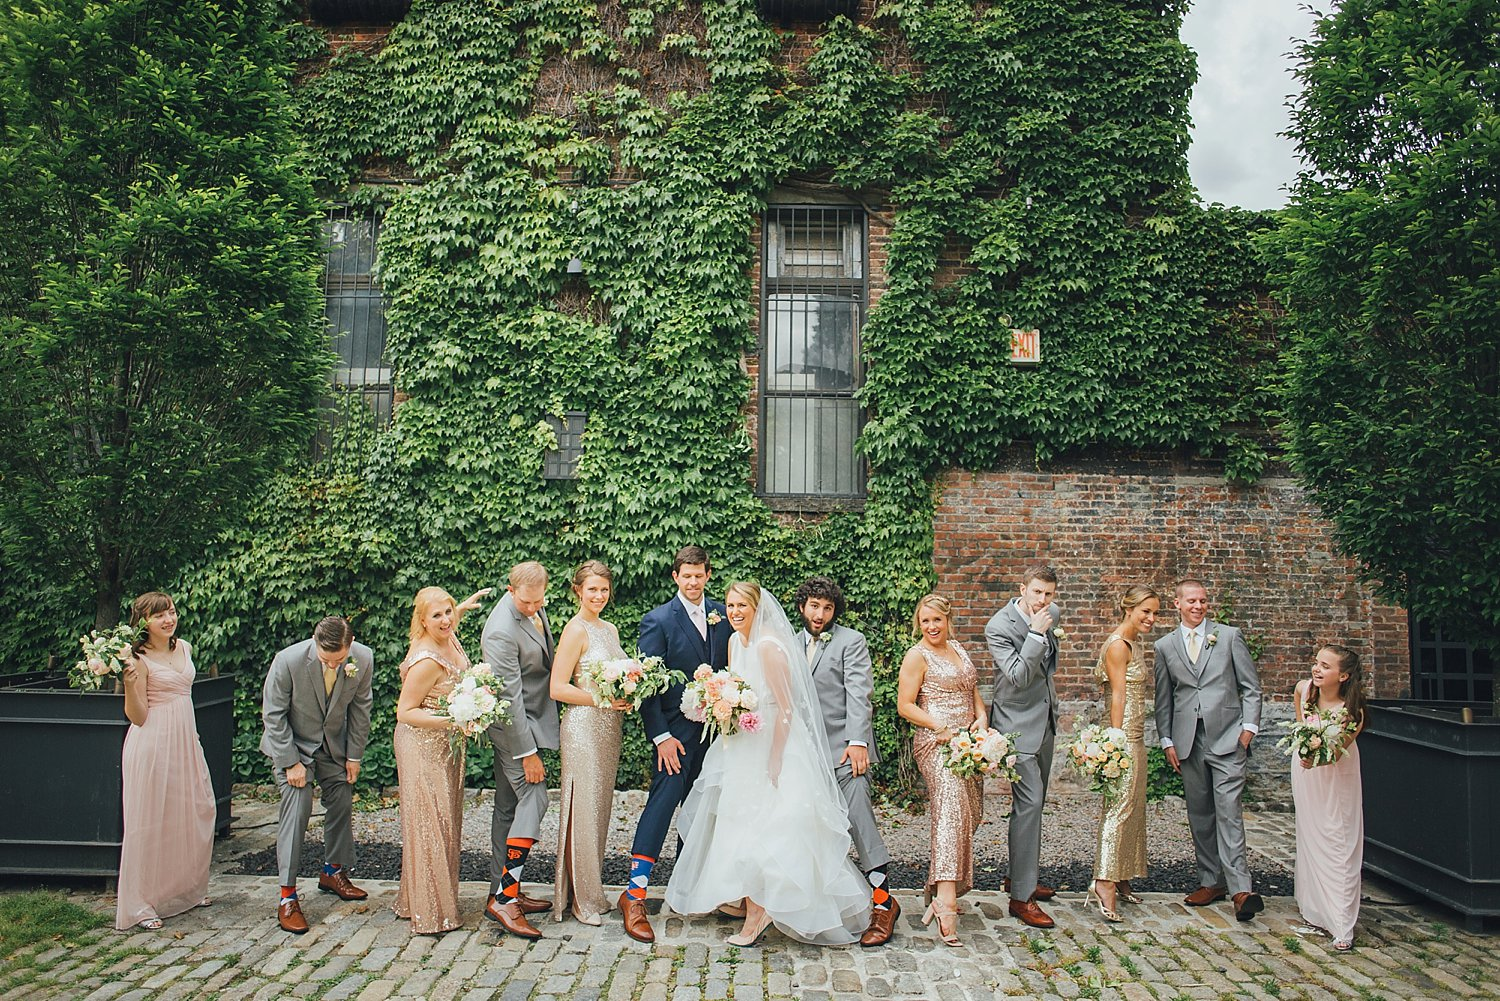 nyc-wedding-photography-nj-tri-state-cinematography-intothestory-by-moo-jae_0344.jpg